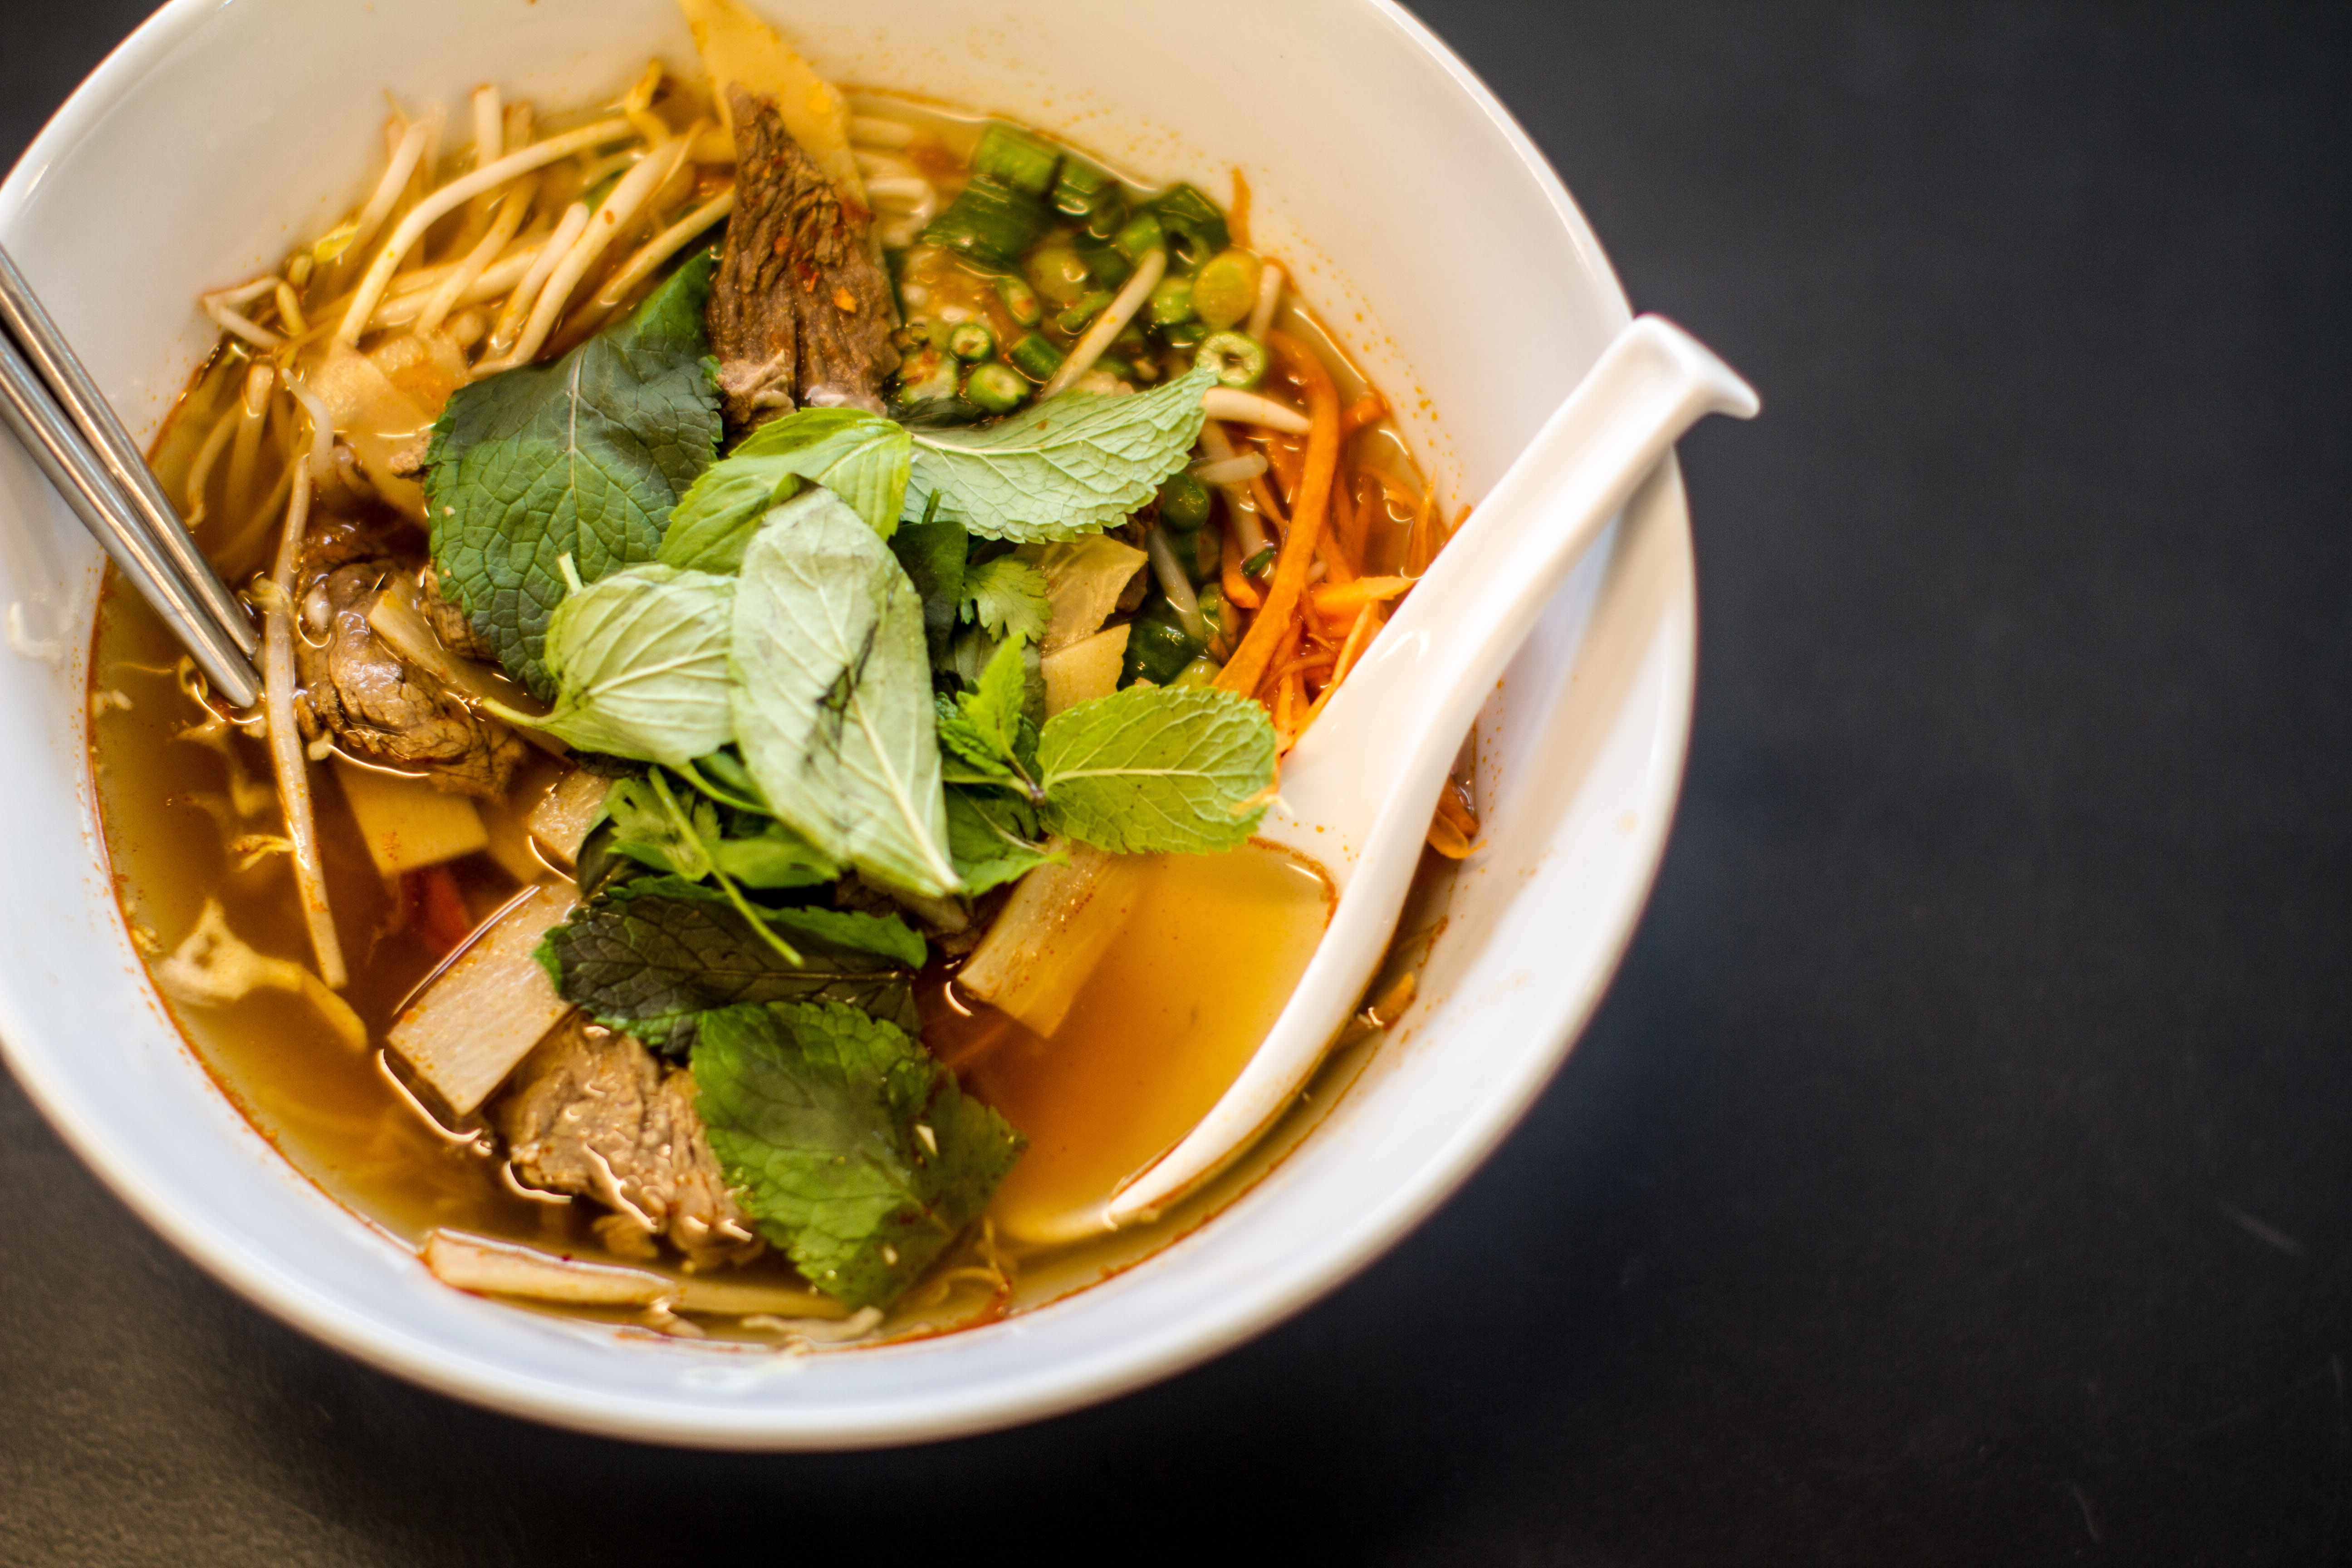 COURTESY FOODHINI Customers of Foodhini seek ethnic foods such as this Laotian soup, Khao Poon Nam Seen, a tomato-based broth with cuts of beef and bamboo, poured over rice noodles with mint and basil.